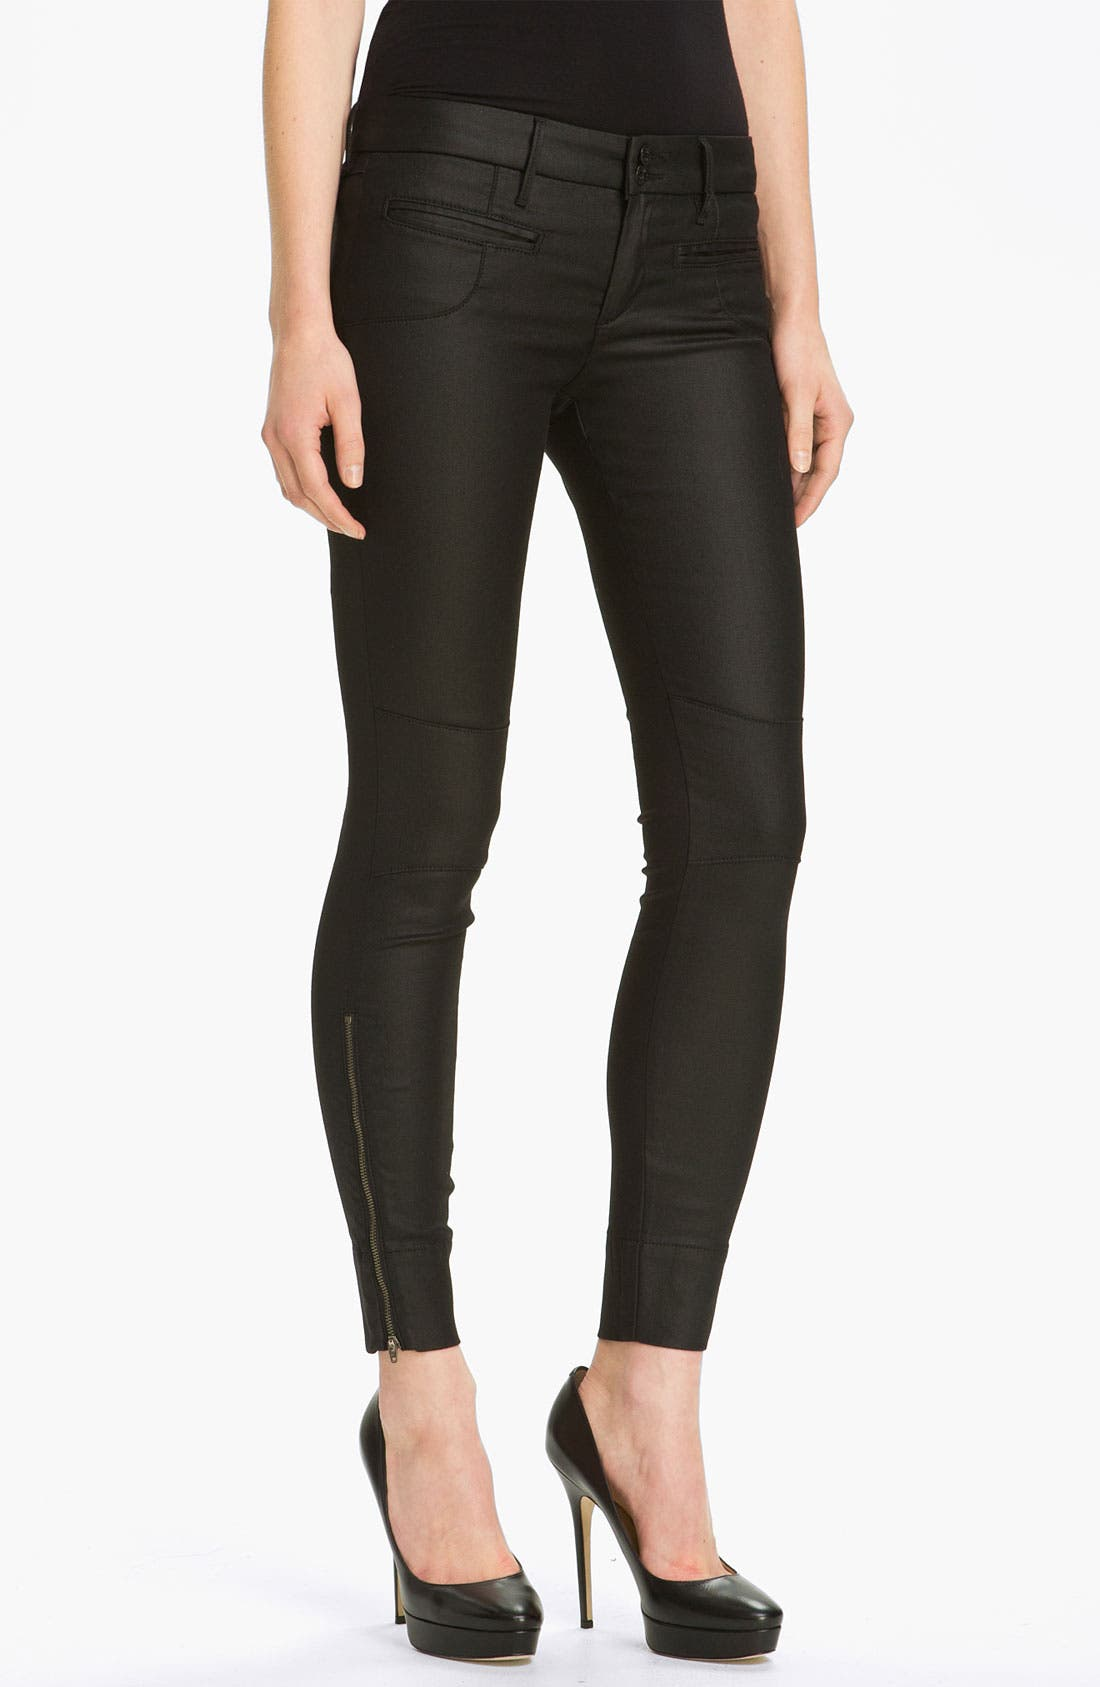 Alternate Image 1 Selected - Habitual 'Addison' Waxed Skinny Stretch Jeans